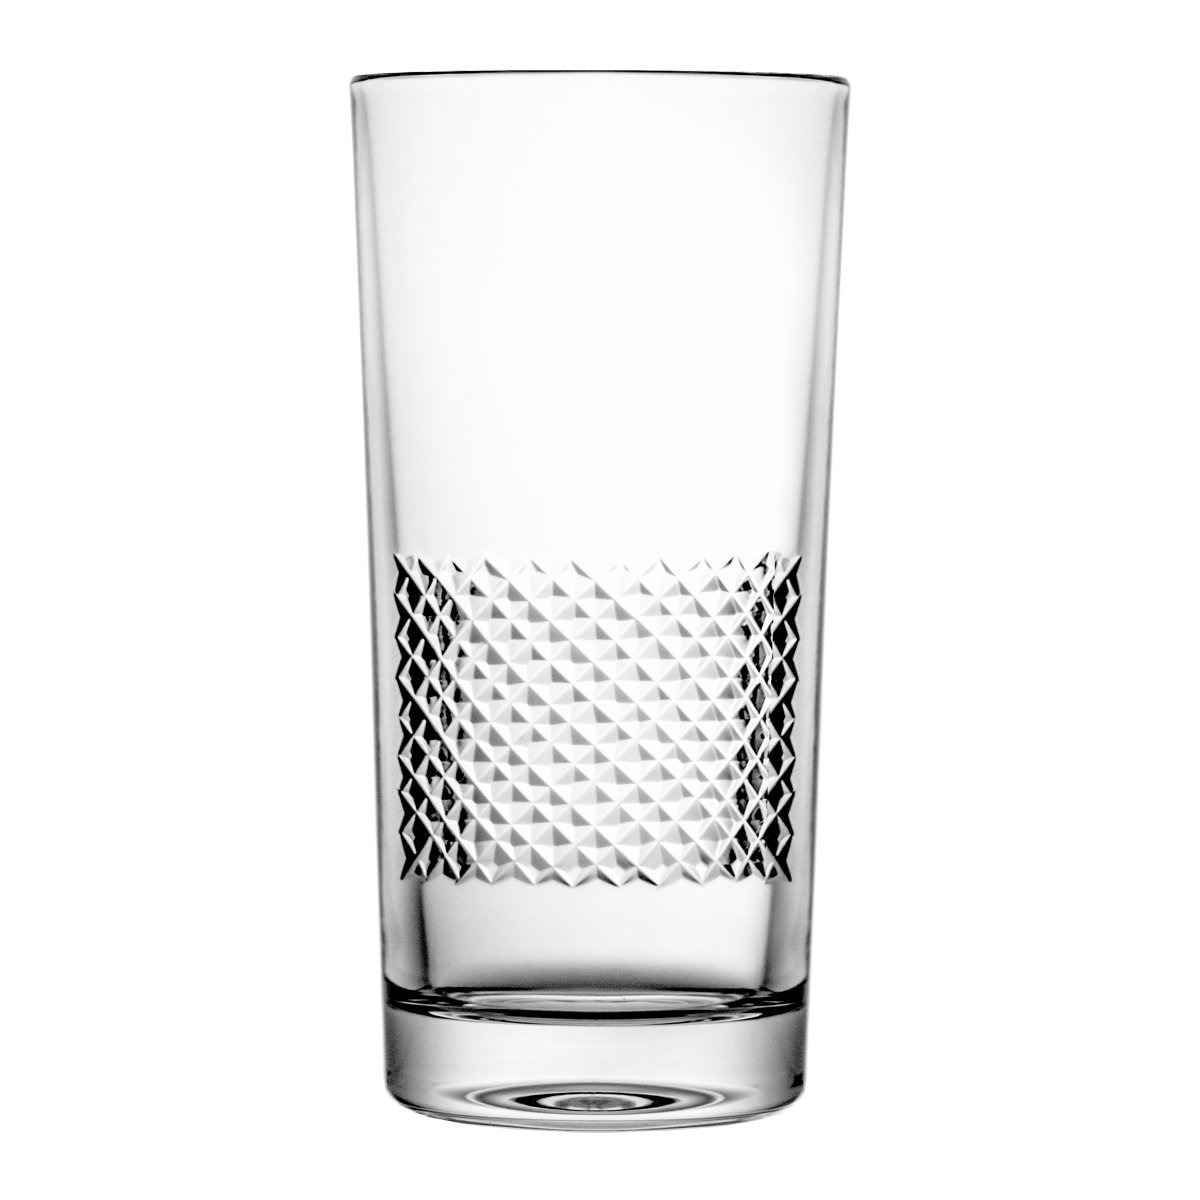 Pack of Aljulia 14339 Water Glass, Crystal, 200 ml, 6 x 11.5 cm 6 Units